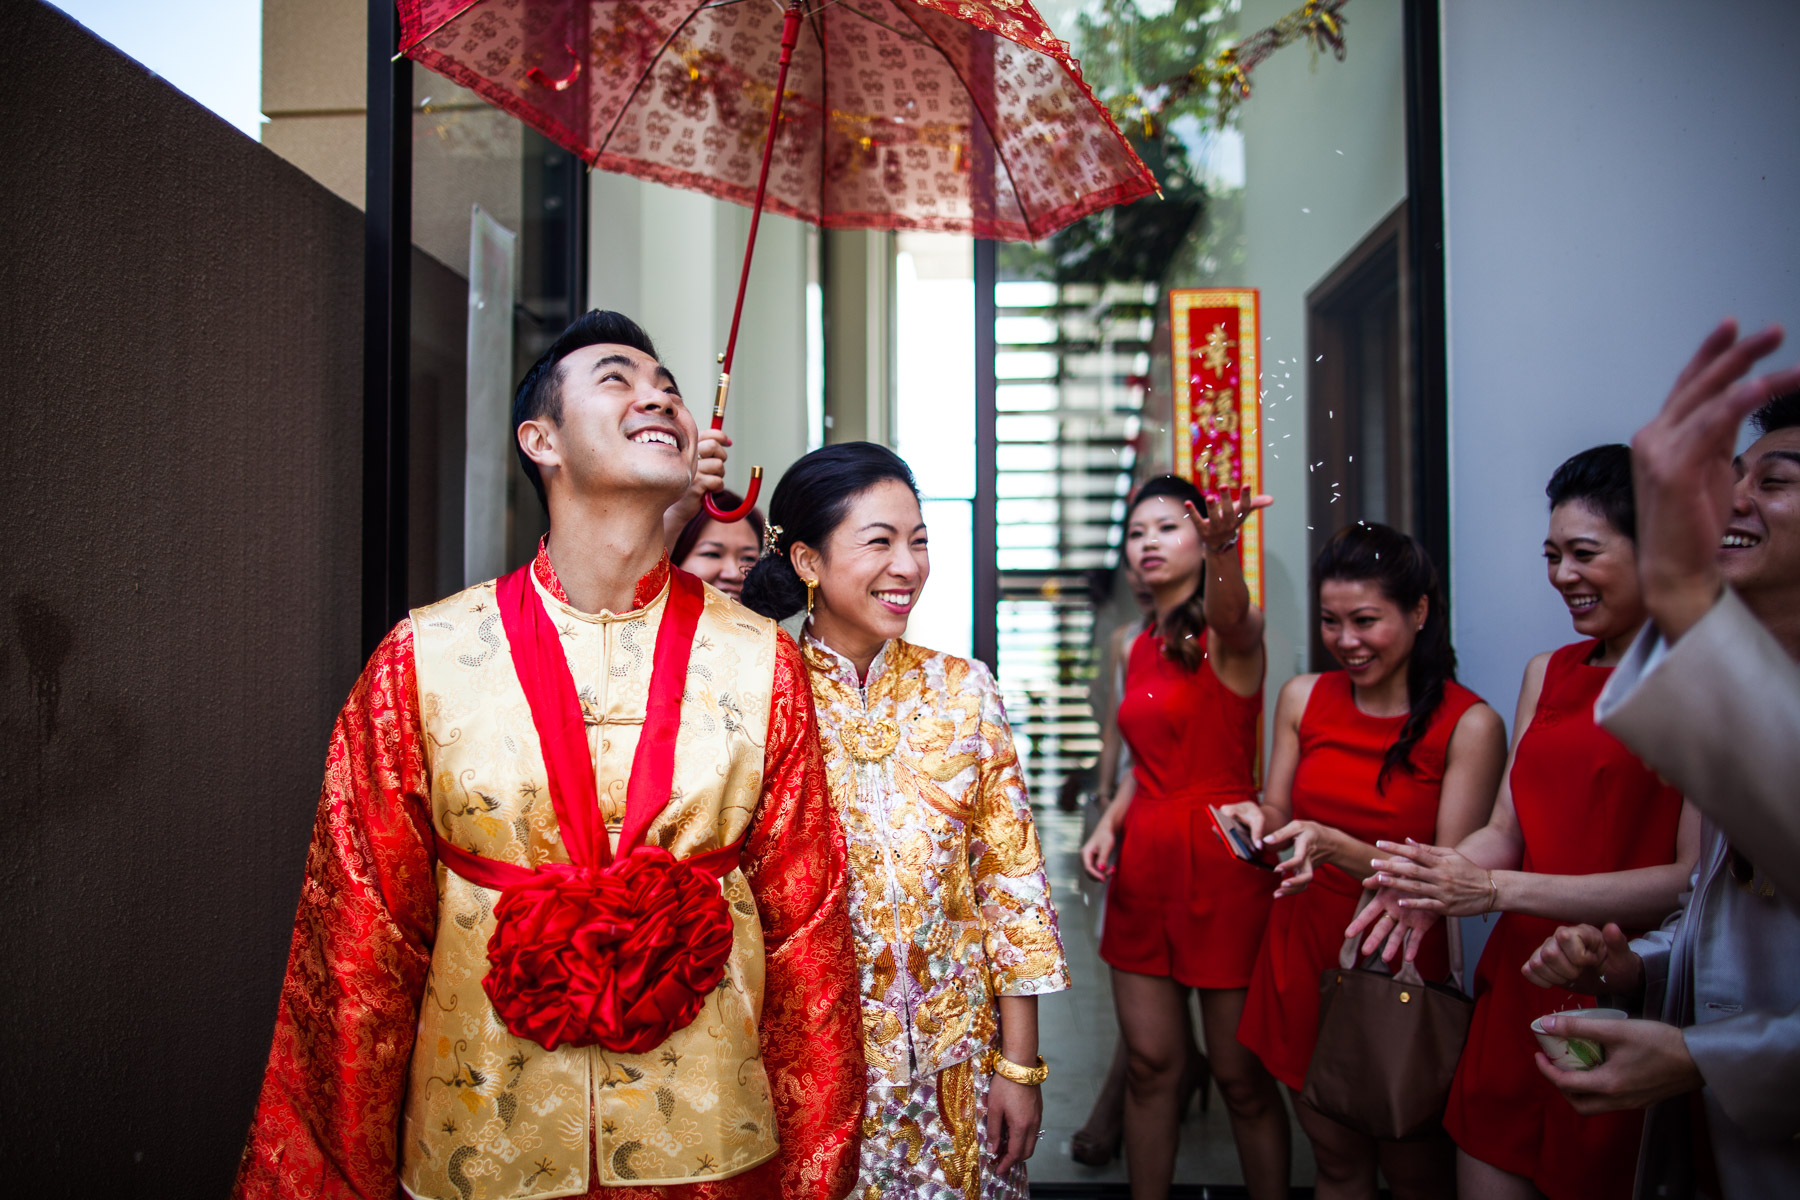 Southeast-Asia-Destination-Wedding-Photography-38